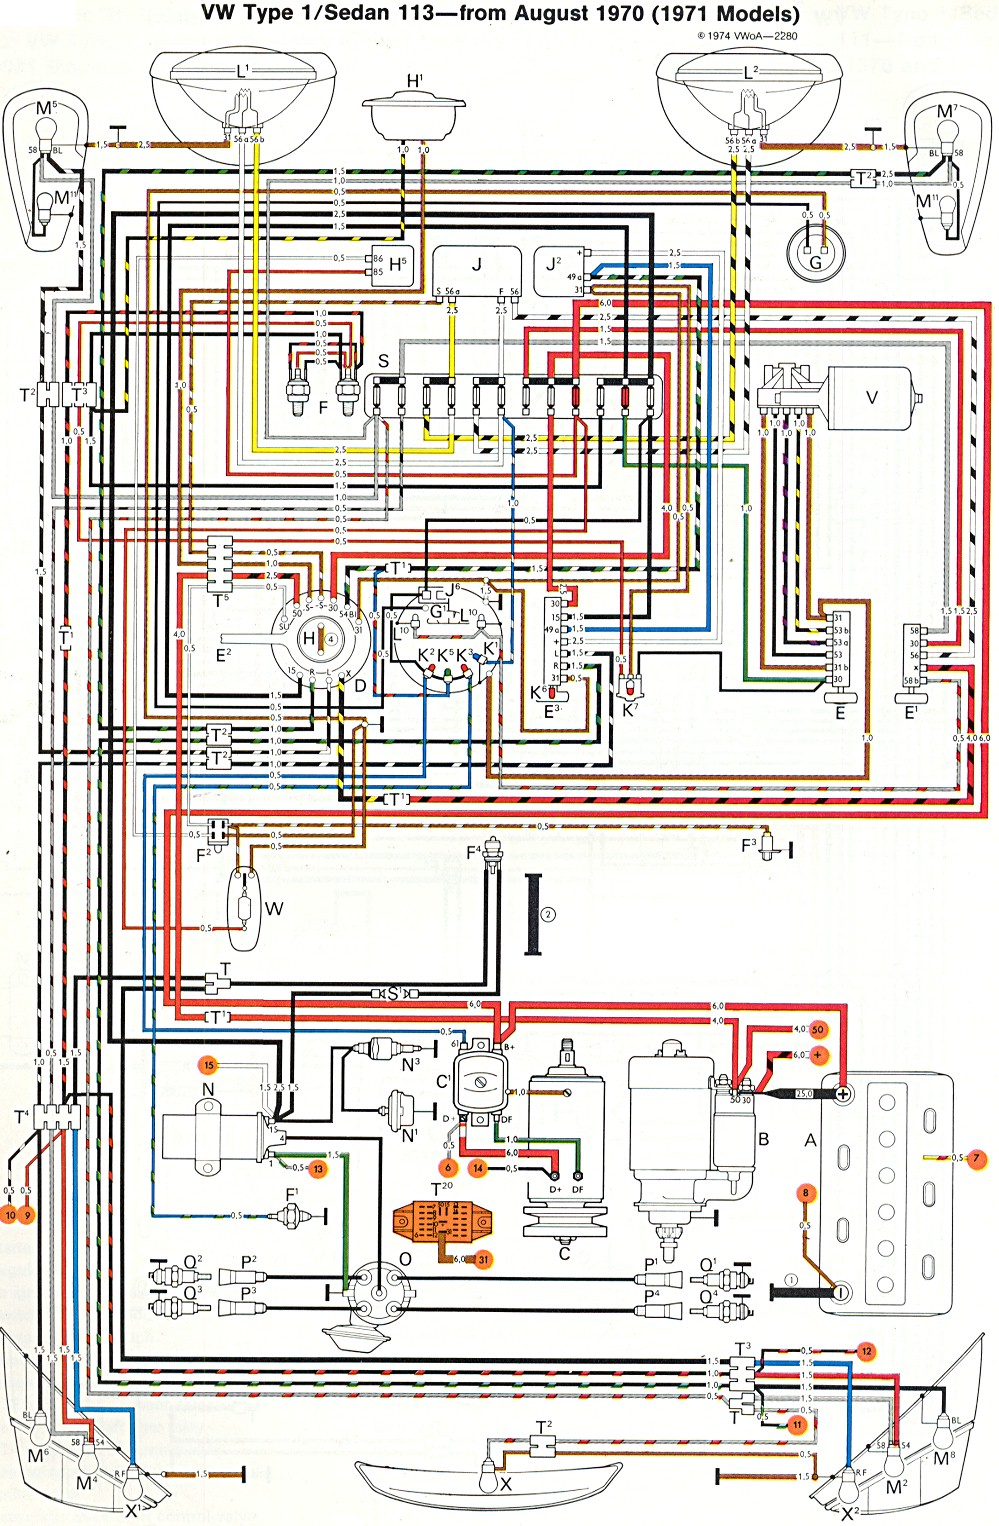 bug_super_71 1971 super beetle wiring diagram thegoldenbug com vw bug wiring diagram at bayanpartner.co